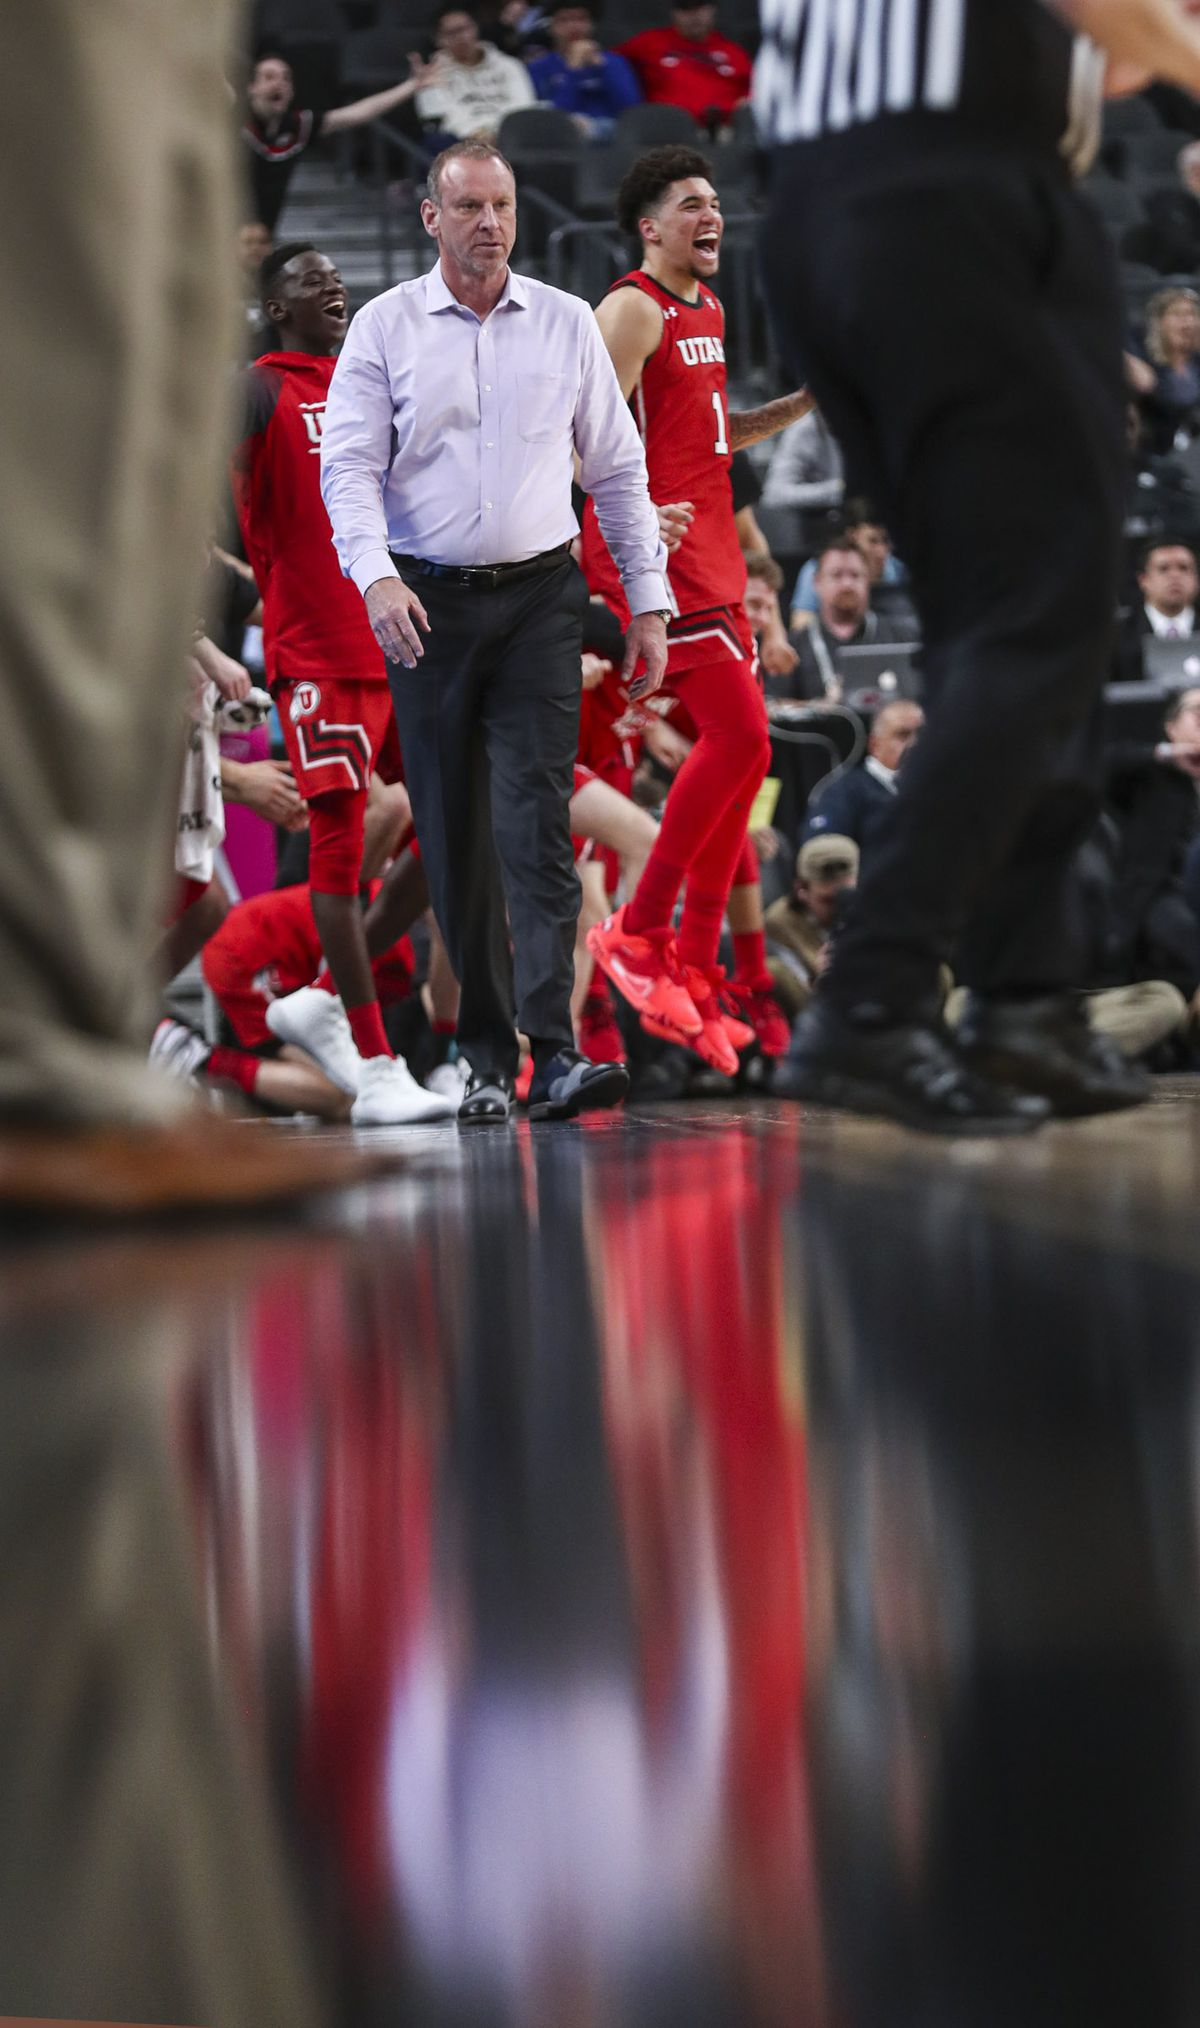 Utah Utes head coach Larry Krystkowiak and the bench celebrate a Utah 3-pointer against Oregon State during the first round of the Pac-12 men's basketball tournament at T-Mobile Arena in Las Vegas on Wednesday, March 11, 2020.